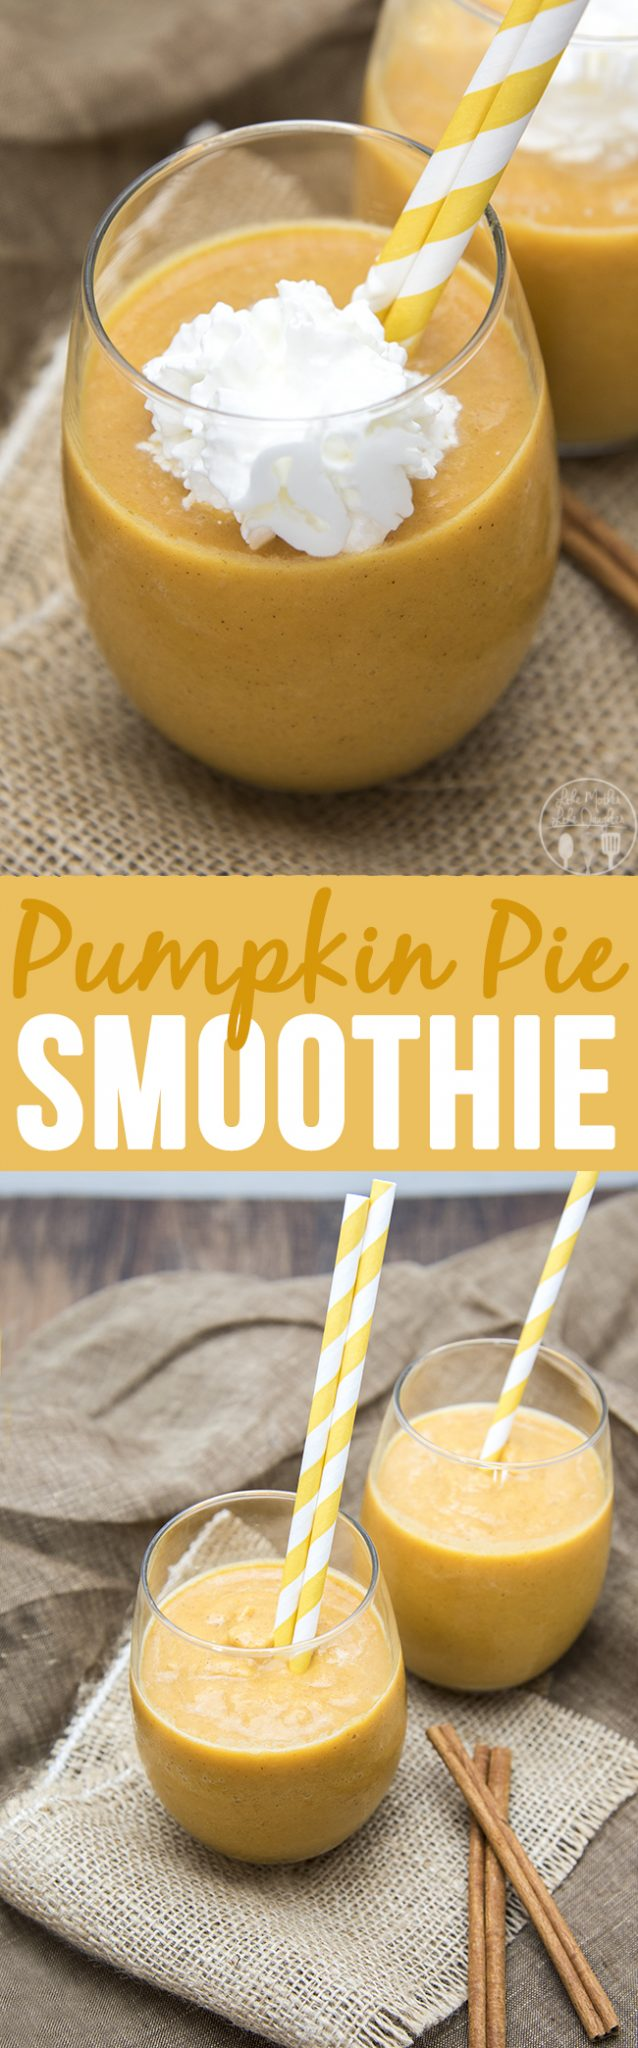 Pumpkin Pie Smoothie - This creamy and silky smoothie tastes just like a slice of pumpkin pie, in smoothie form!